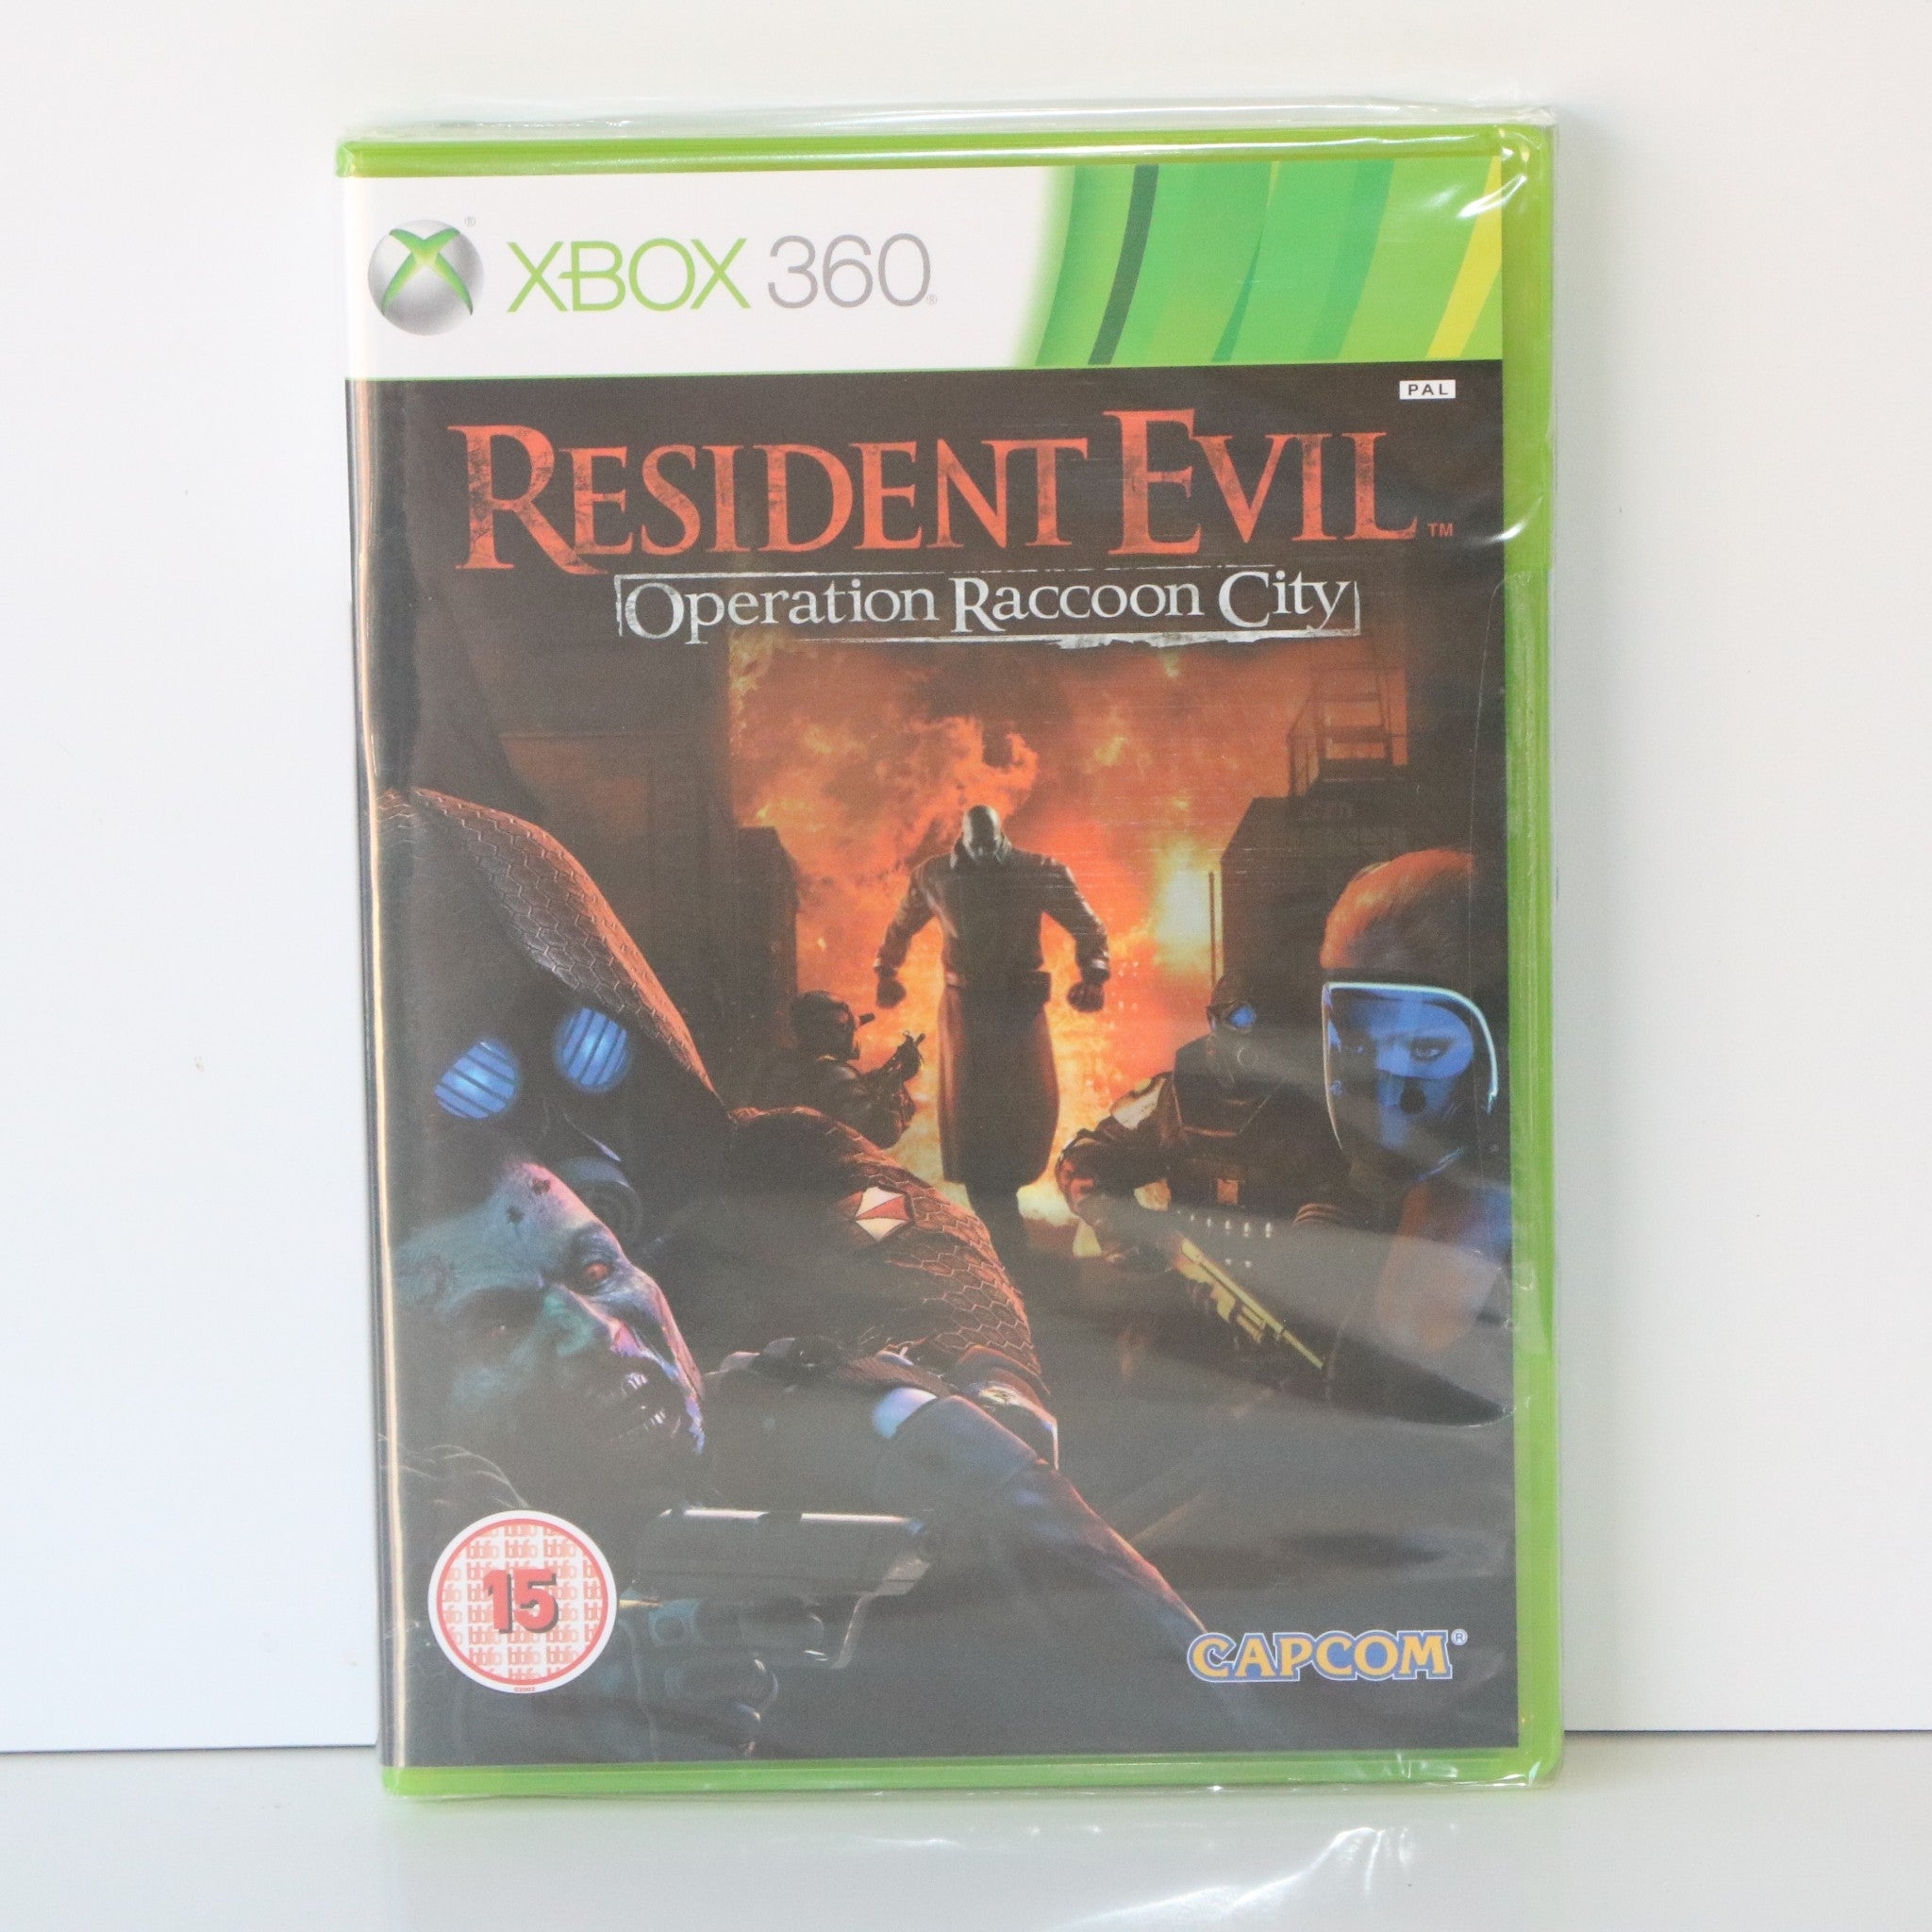 Resident Evil Operation Raccoon City - Capcom - Microsoft Xbox 360 Game - New